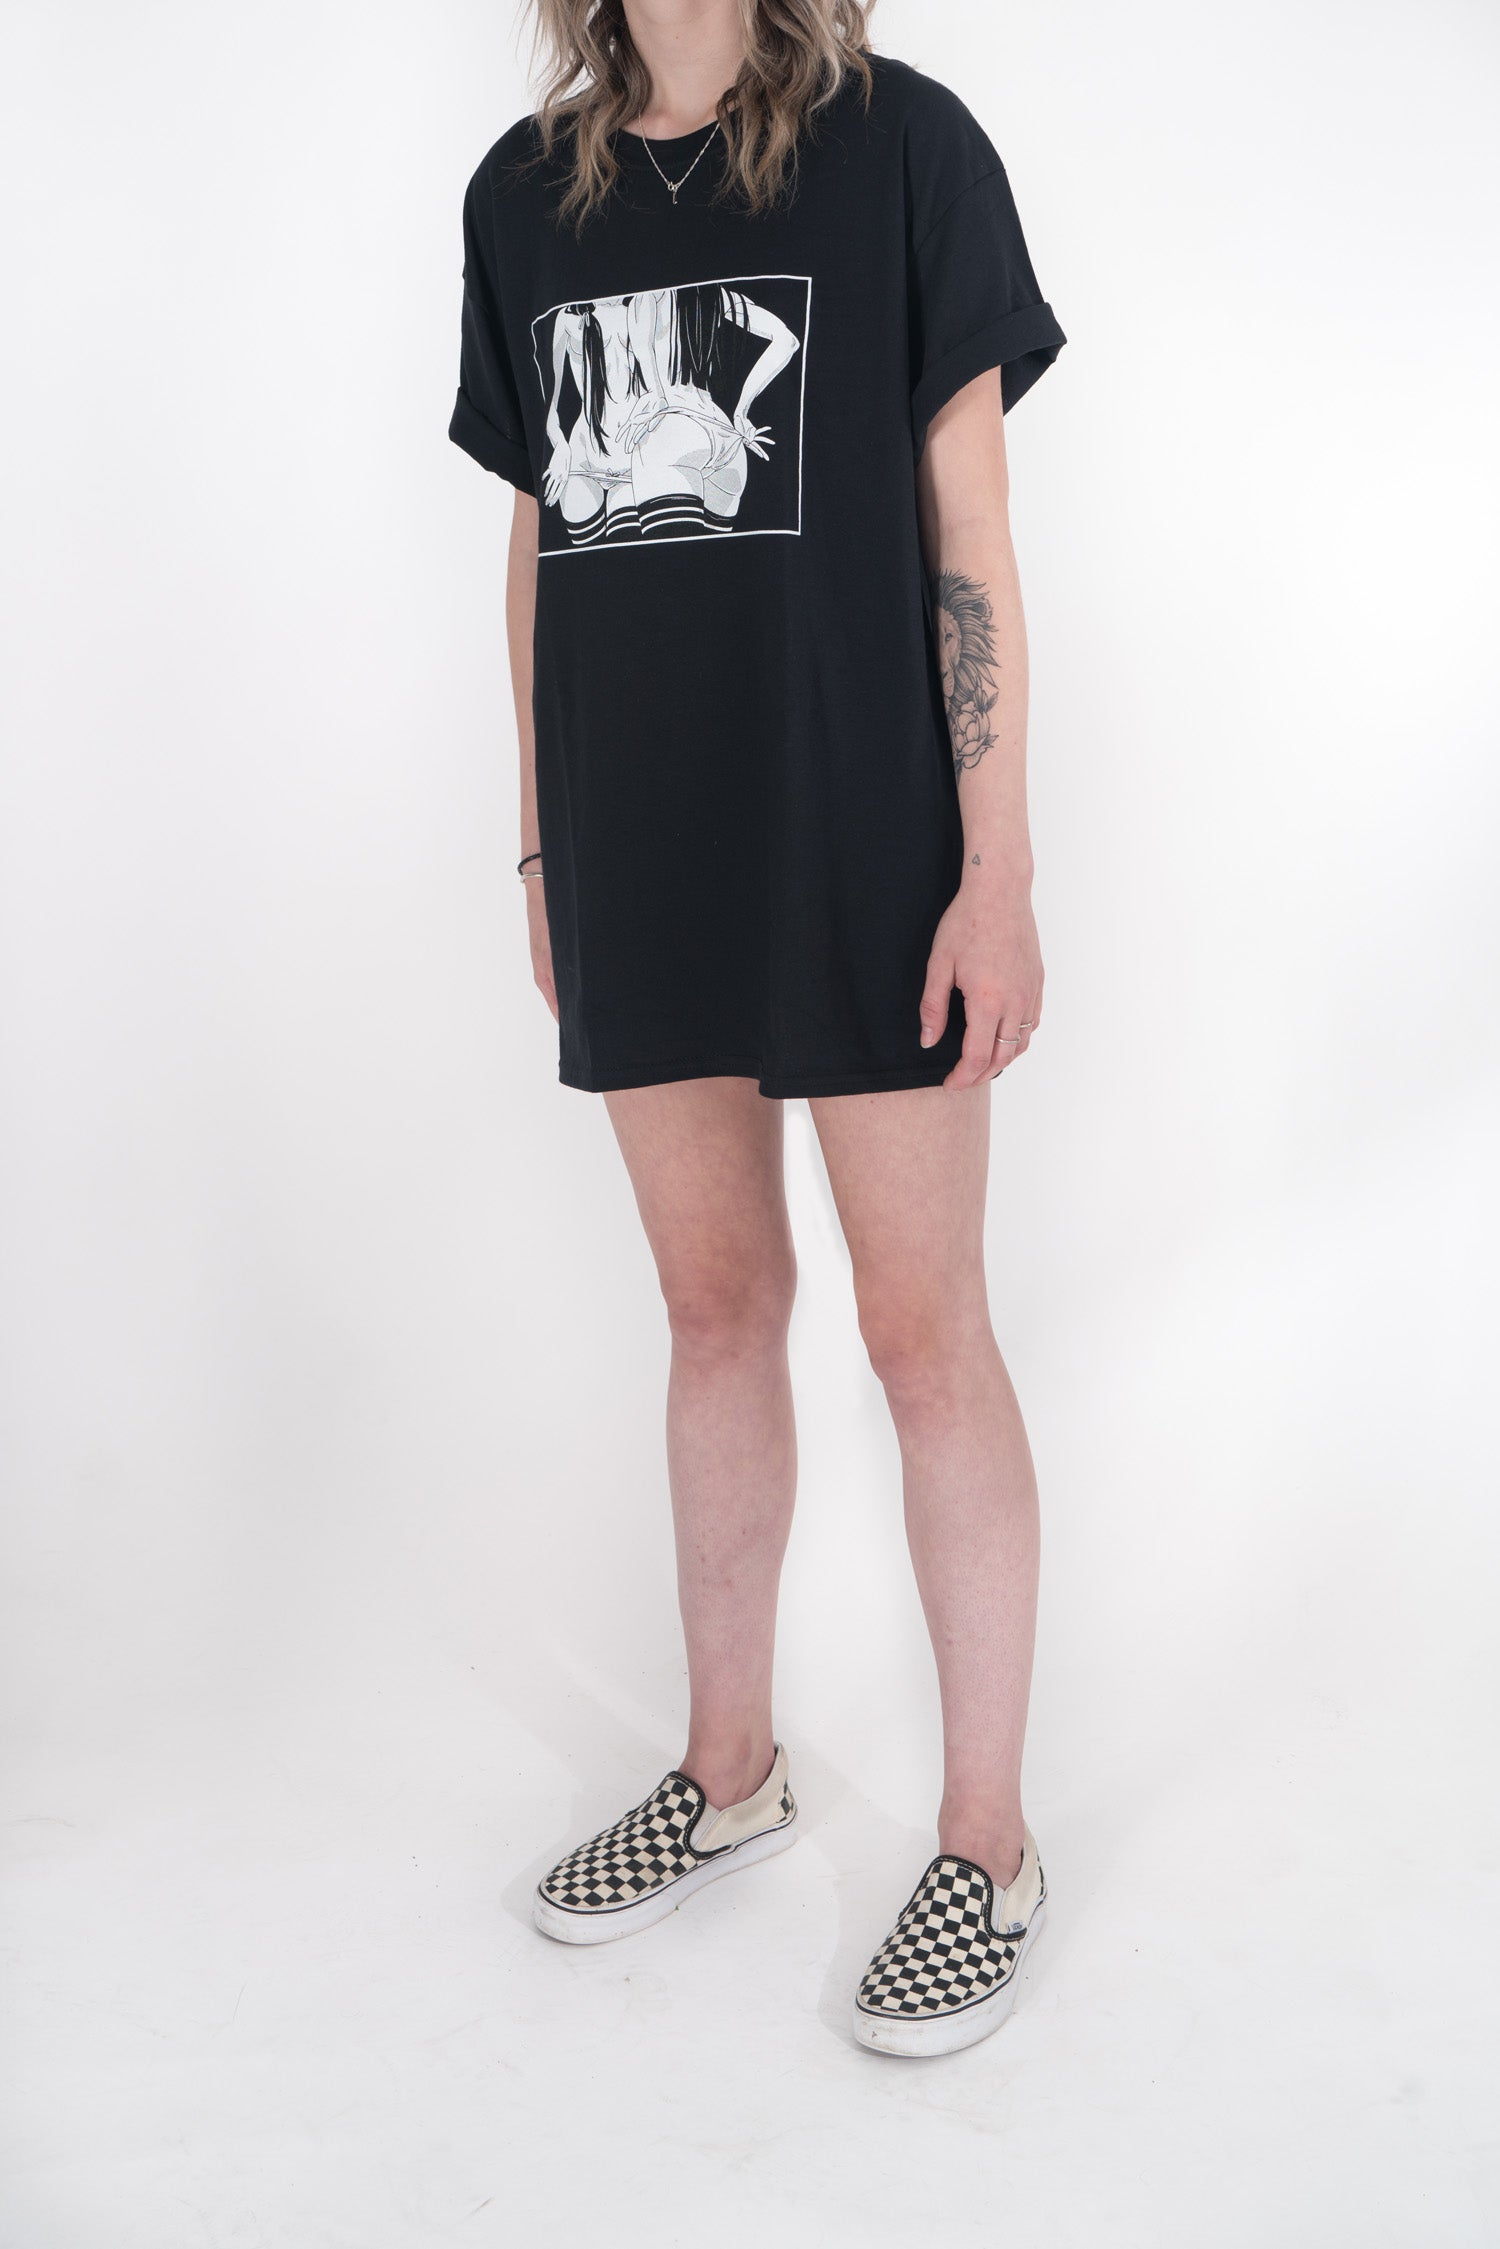 Lewd Girls Young & Reckless Tee